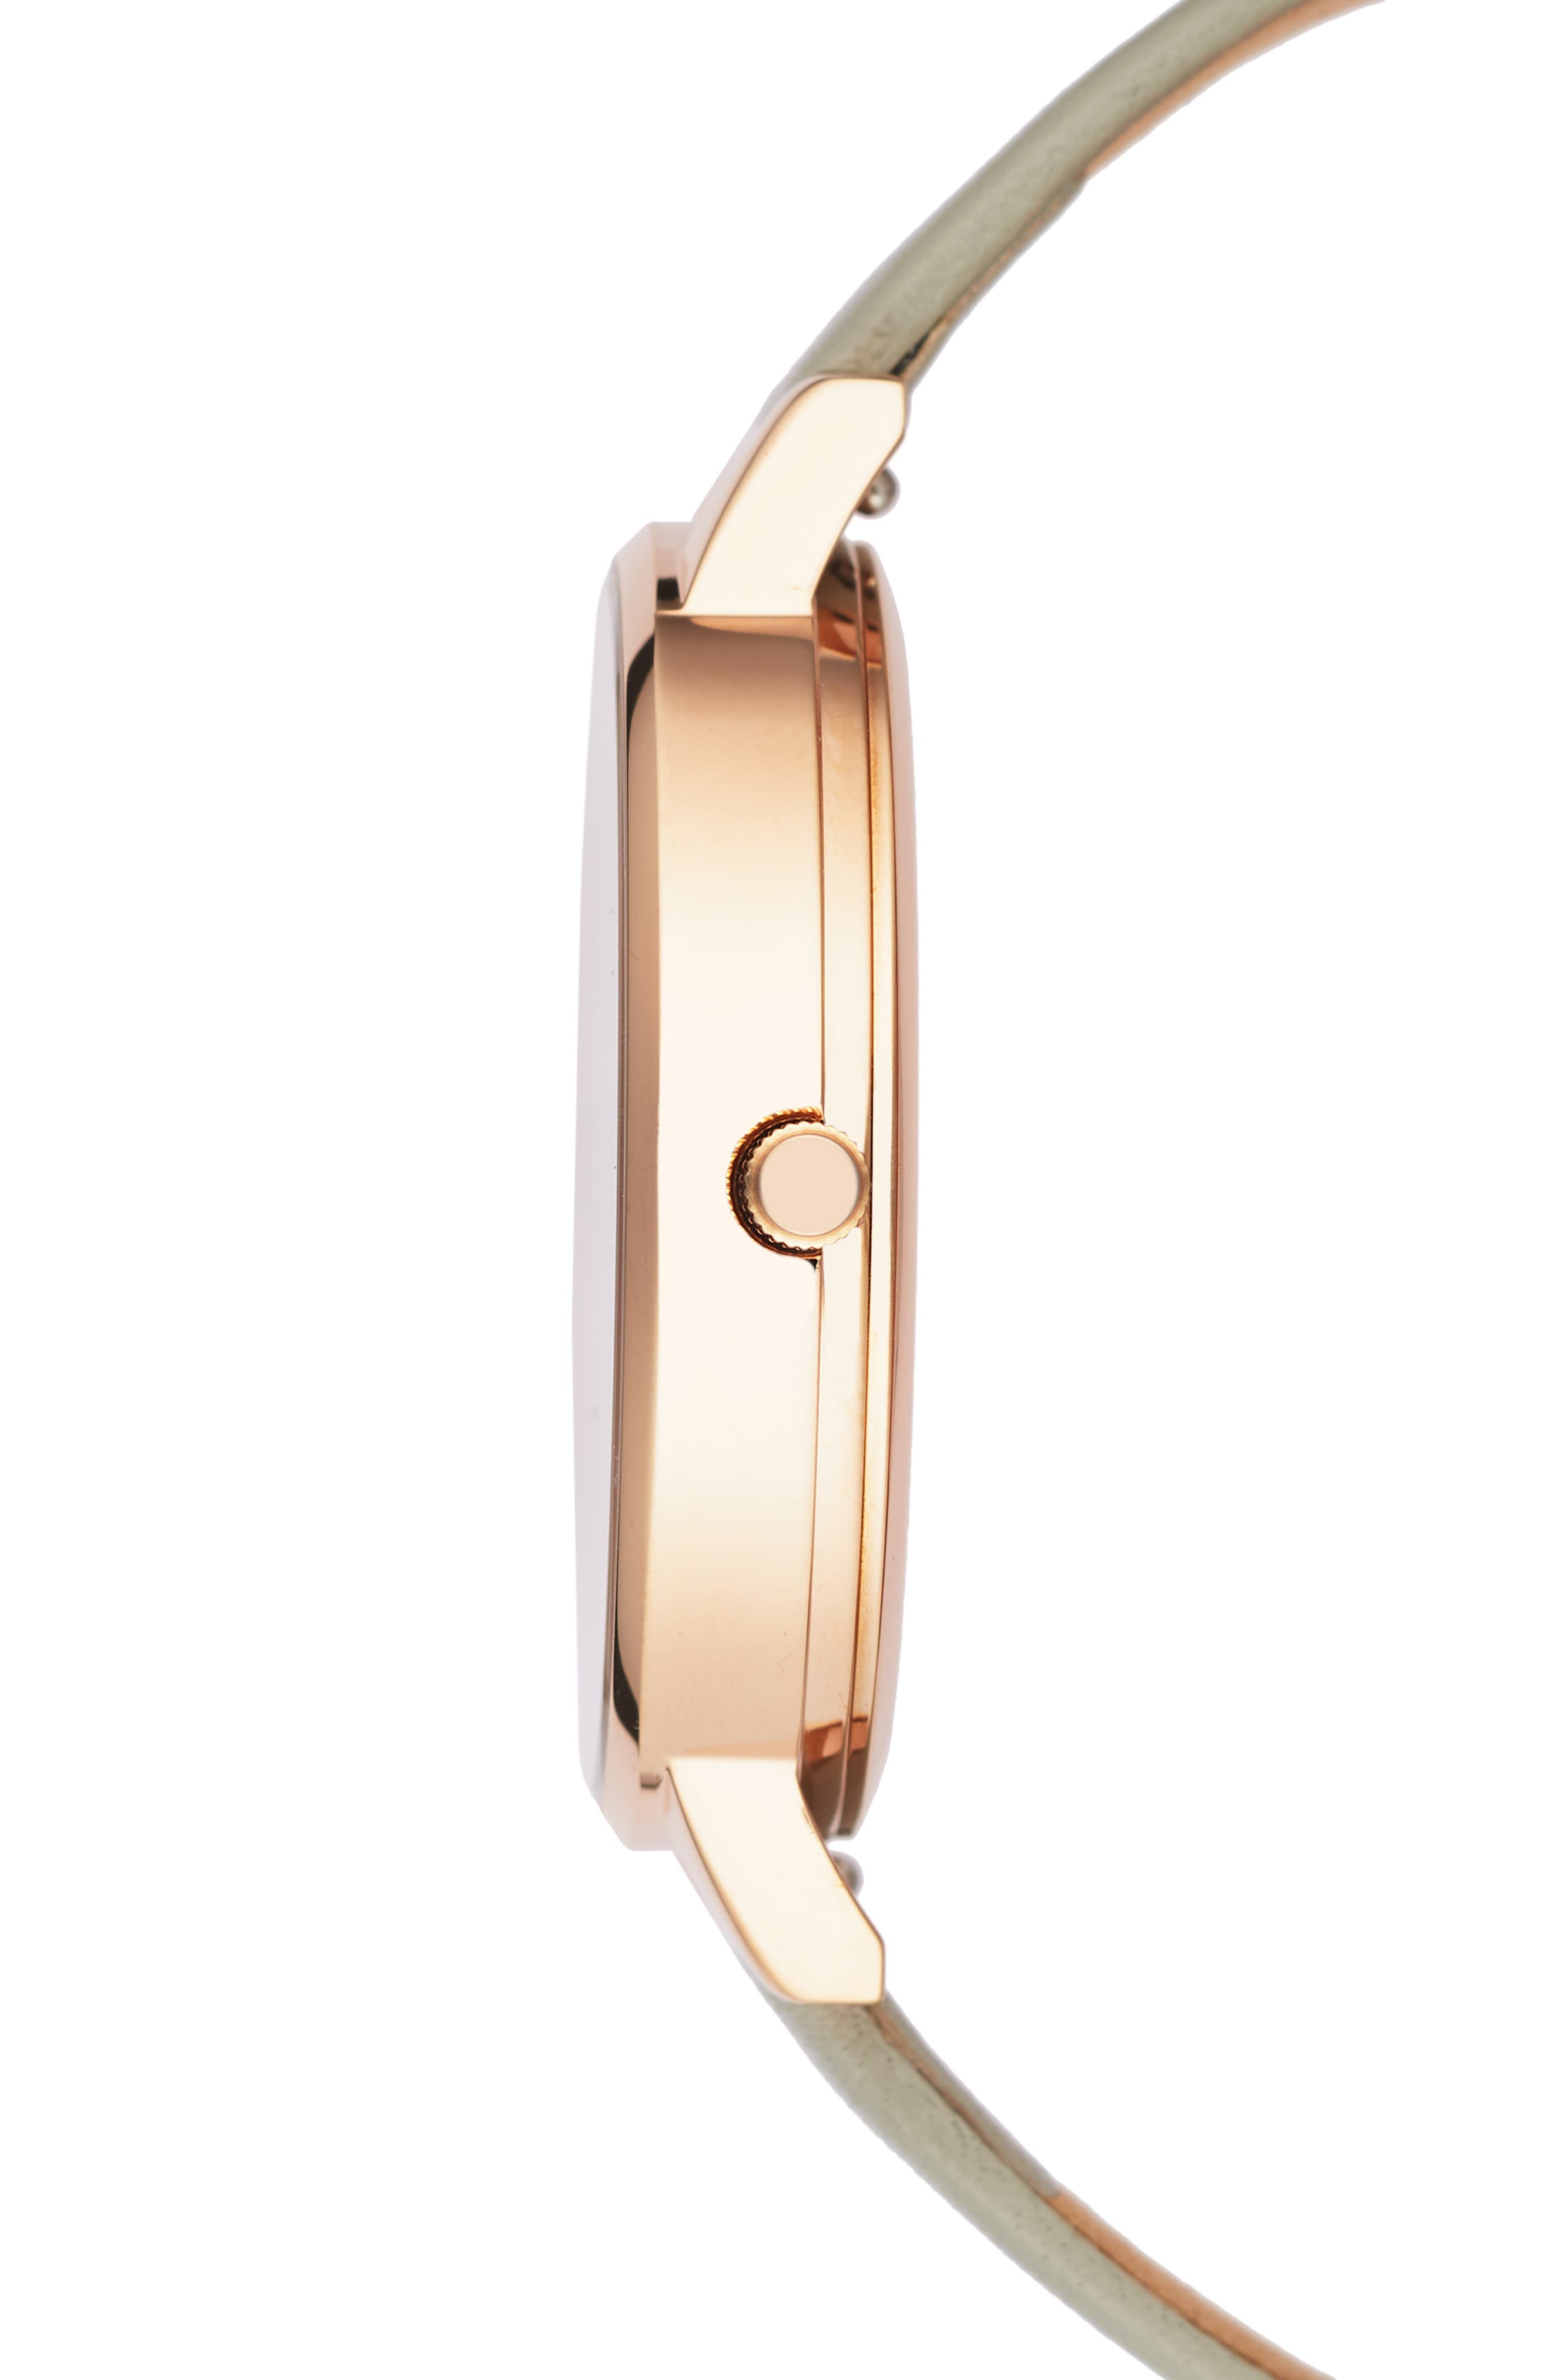 OLIVIA BURTON, Bejewelled Leather Strap Watch, 38mm, Alternate thumbnail 3, color, GREY/ FLORAL/ ROSE GOLD